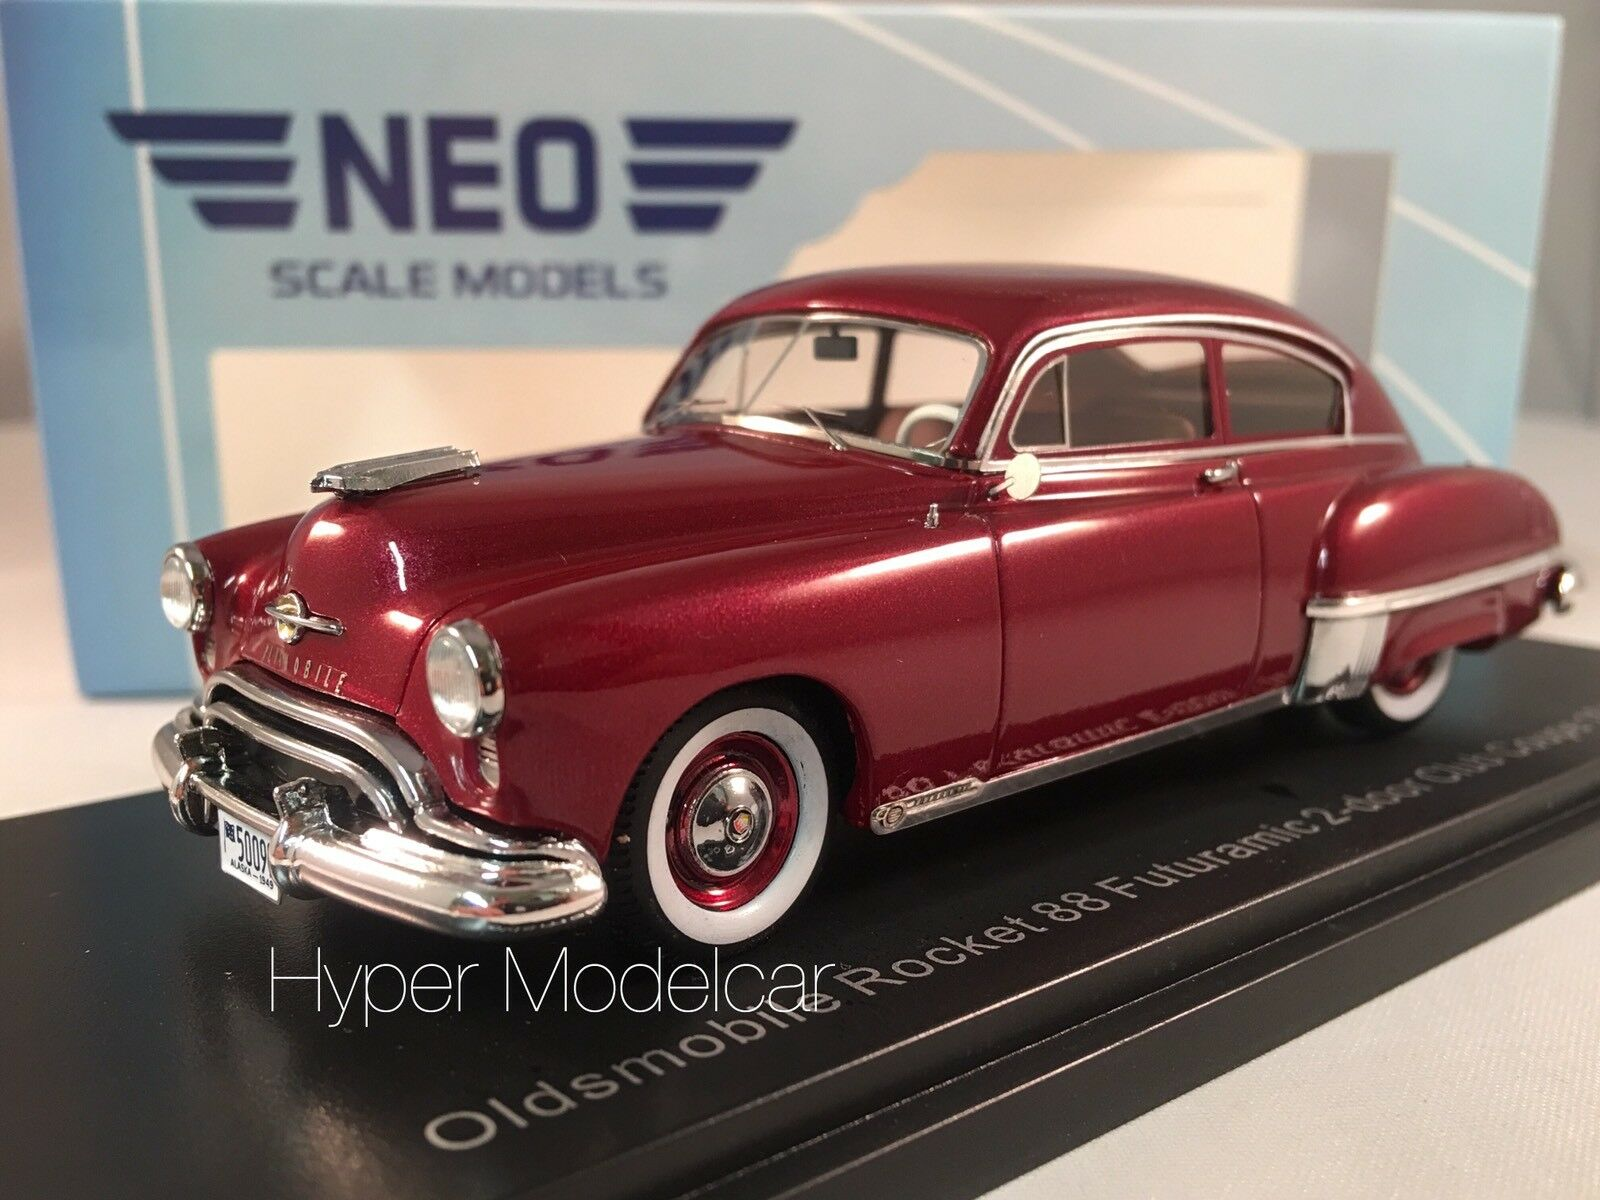 NEO SCALE MODELS 1 43 Oldsmobile Rocket 88 Futuramic 2-door Coupè 1949 NEO45756